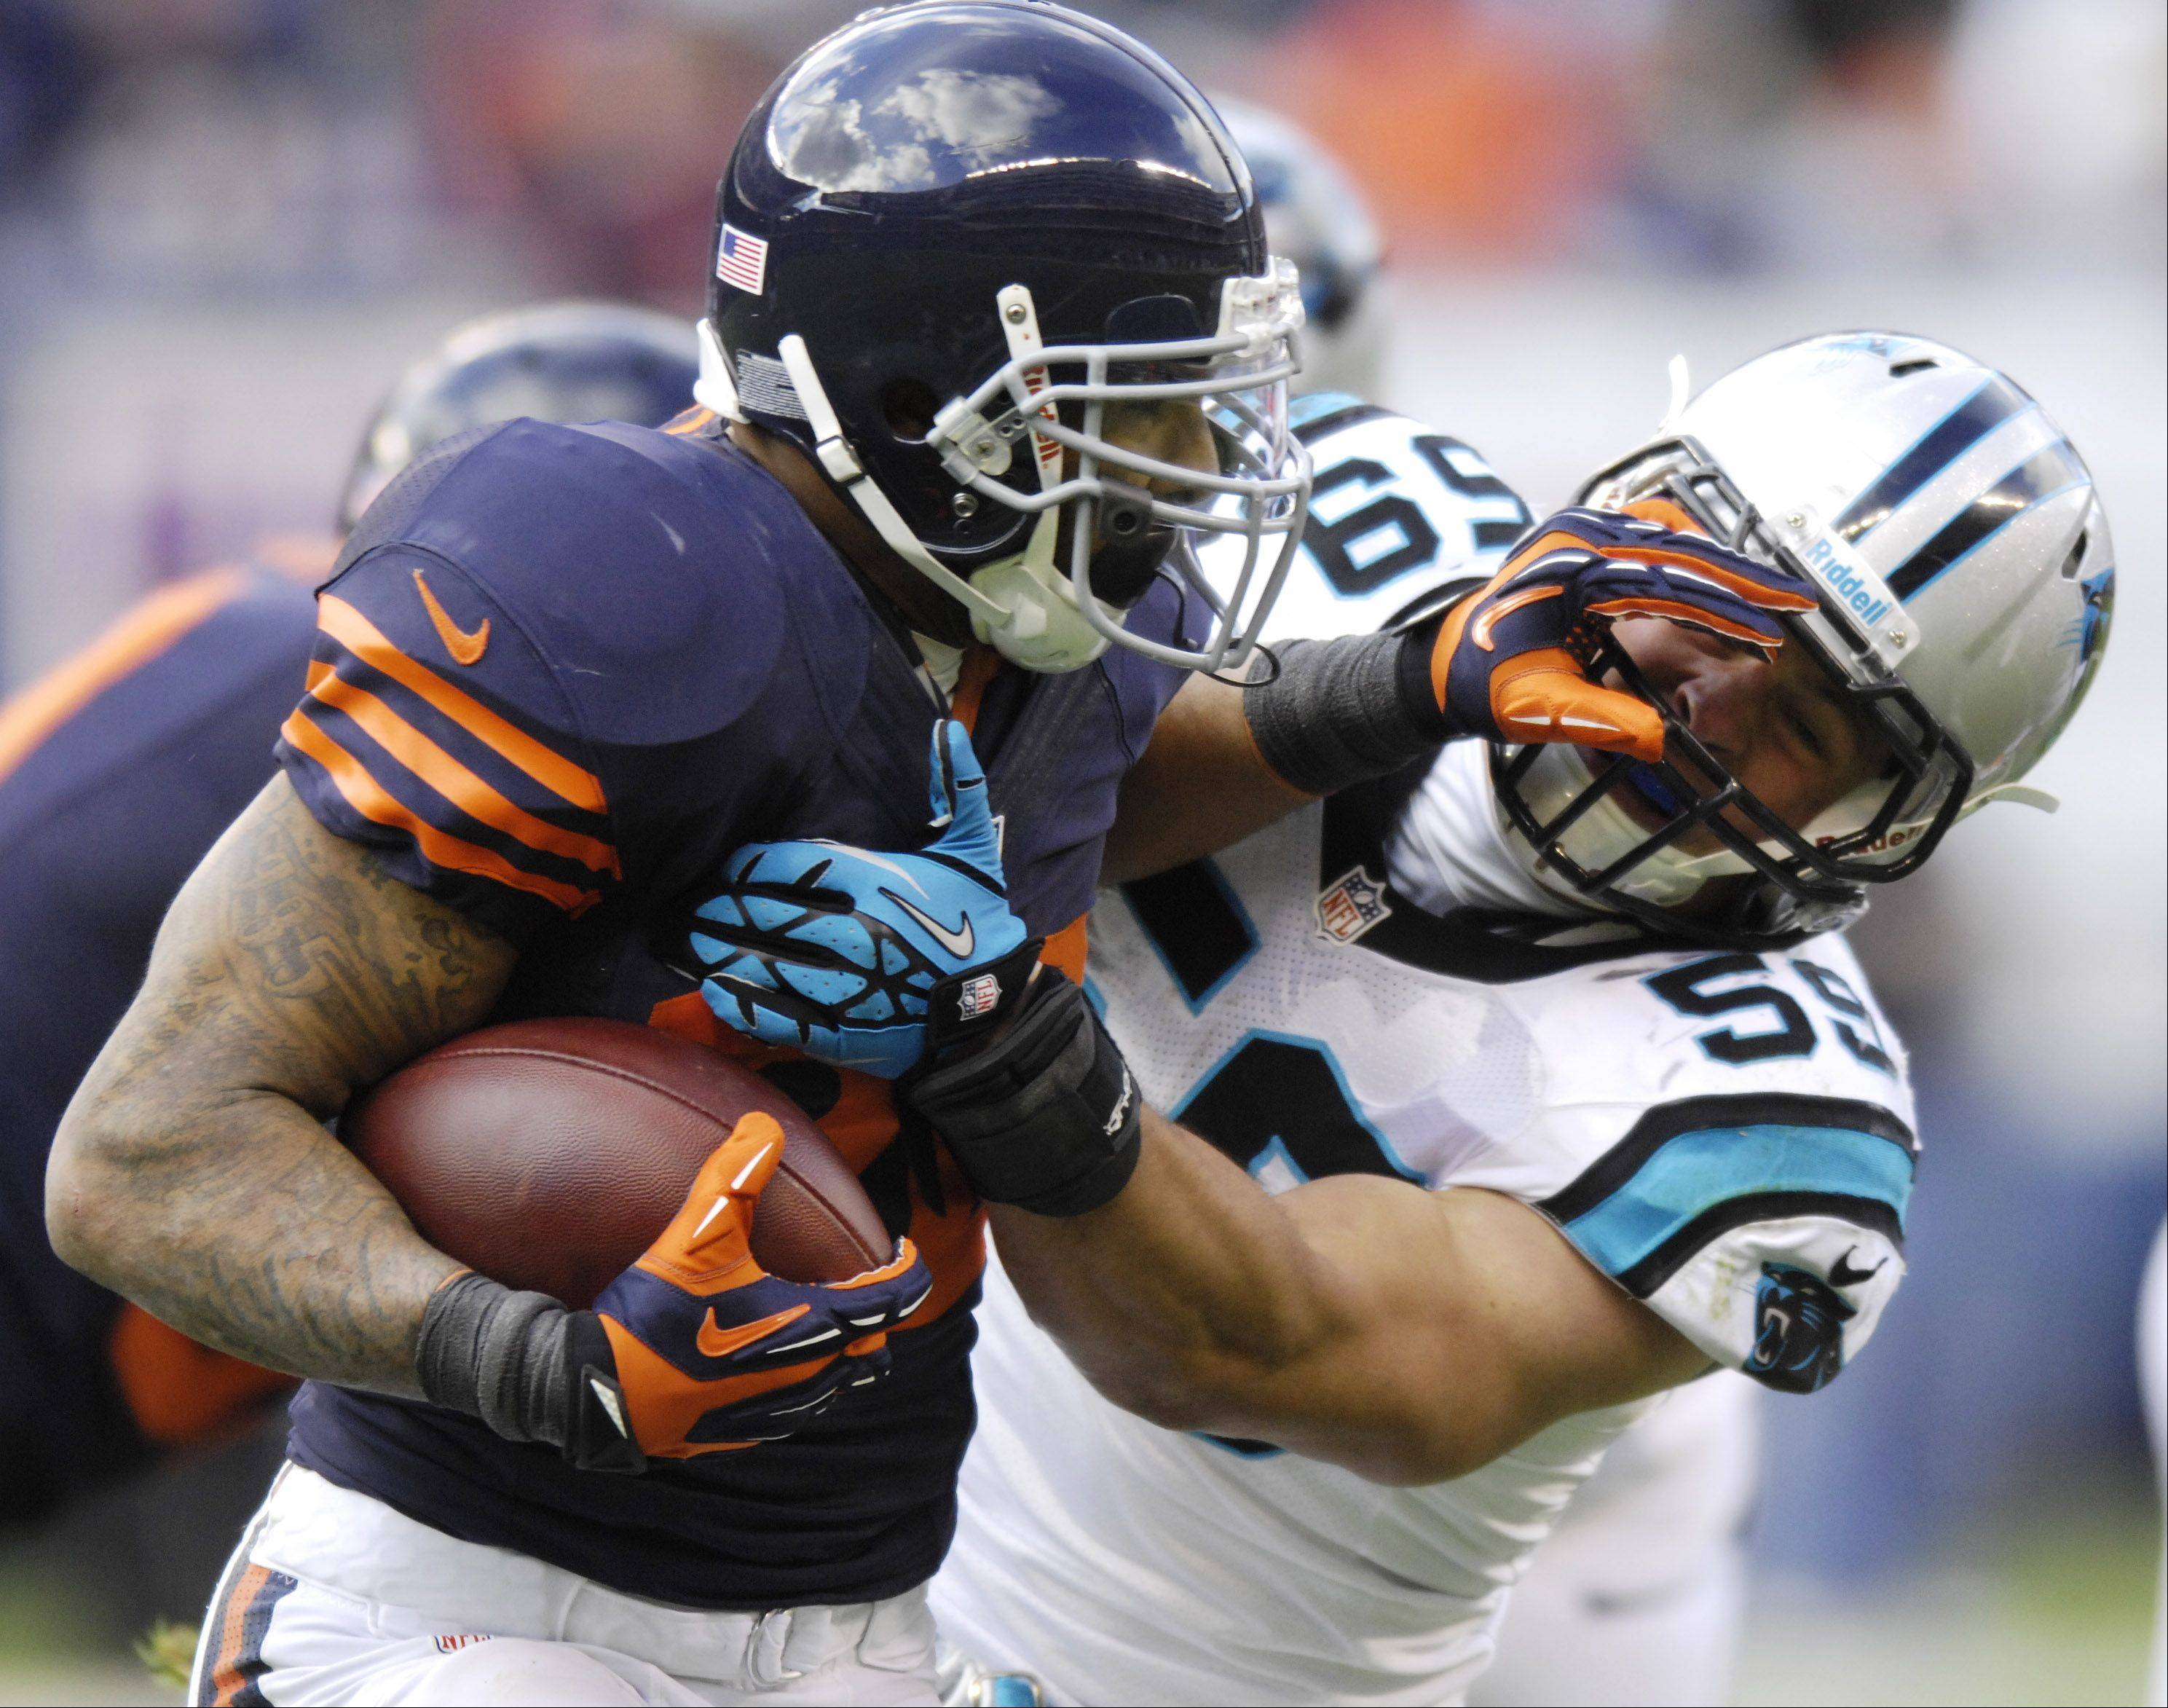 Chicago Bears running back Matt Forte fights off Carolina Panthers outside linebacker Luke Kuechly during Sunday's game at Soldier Field.